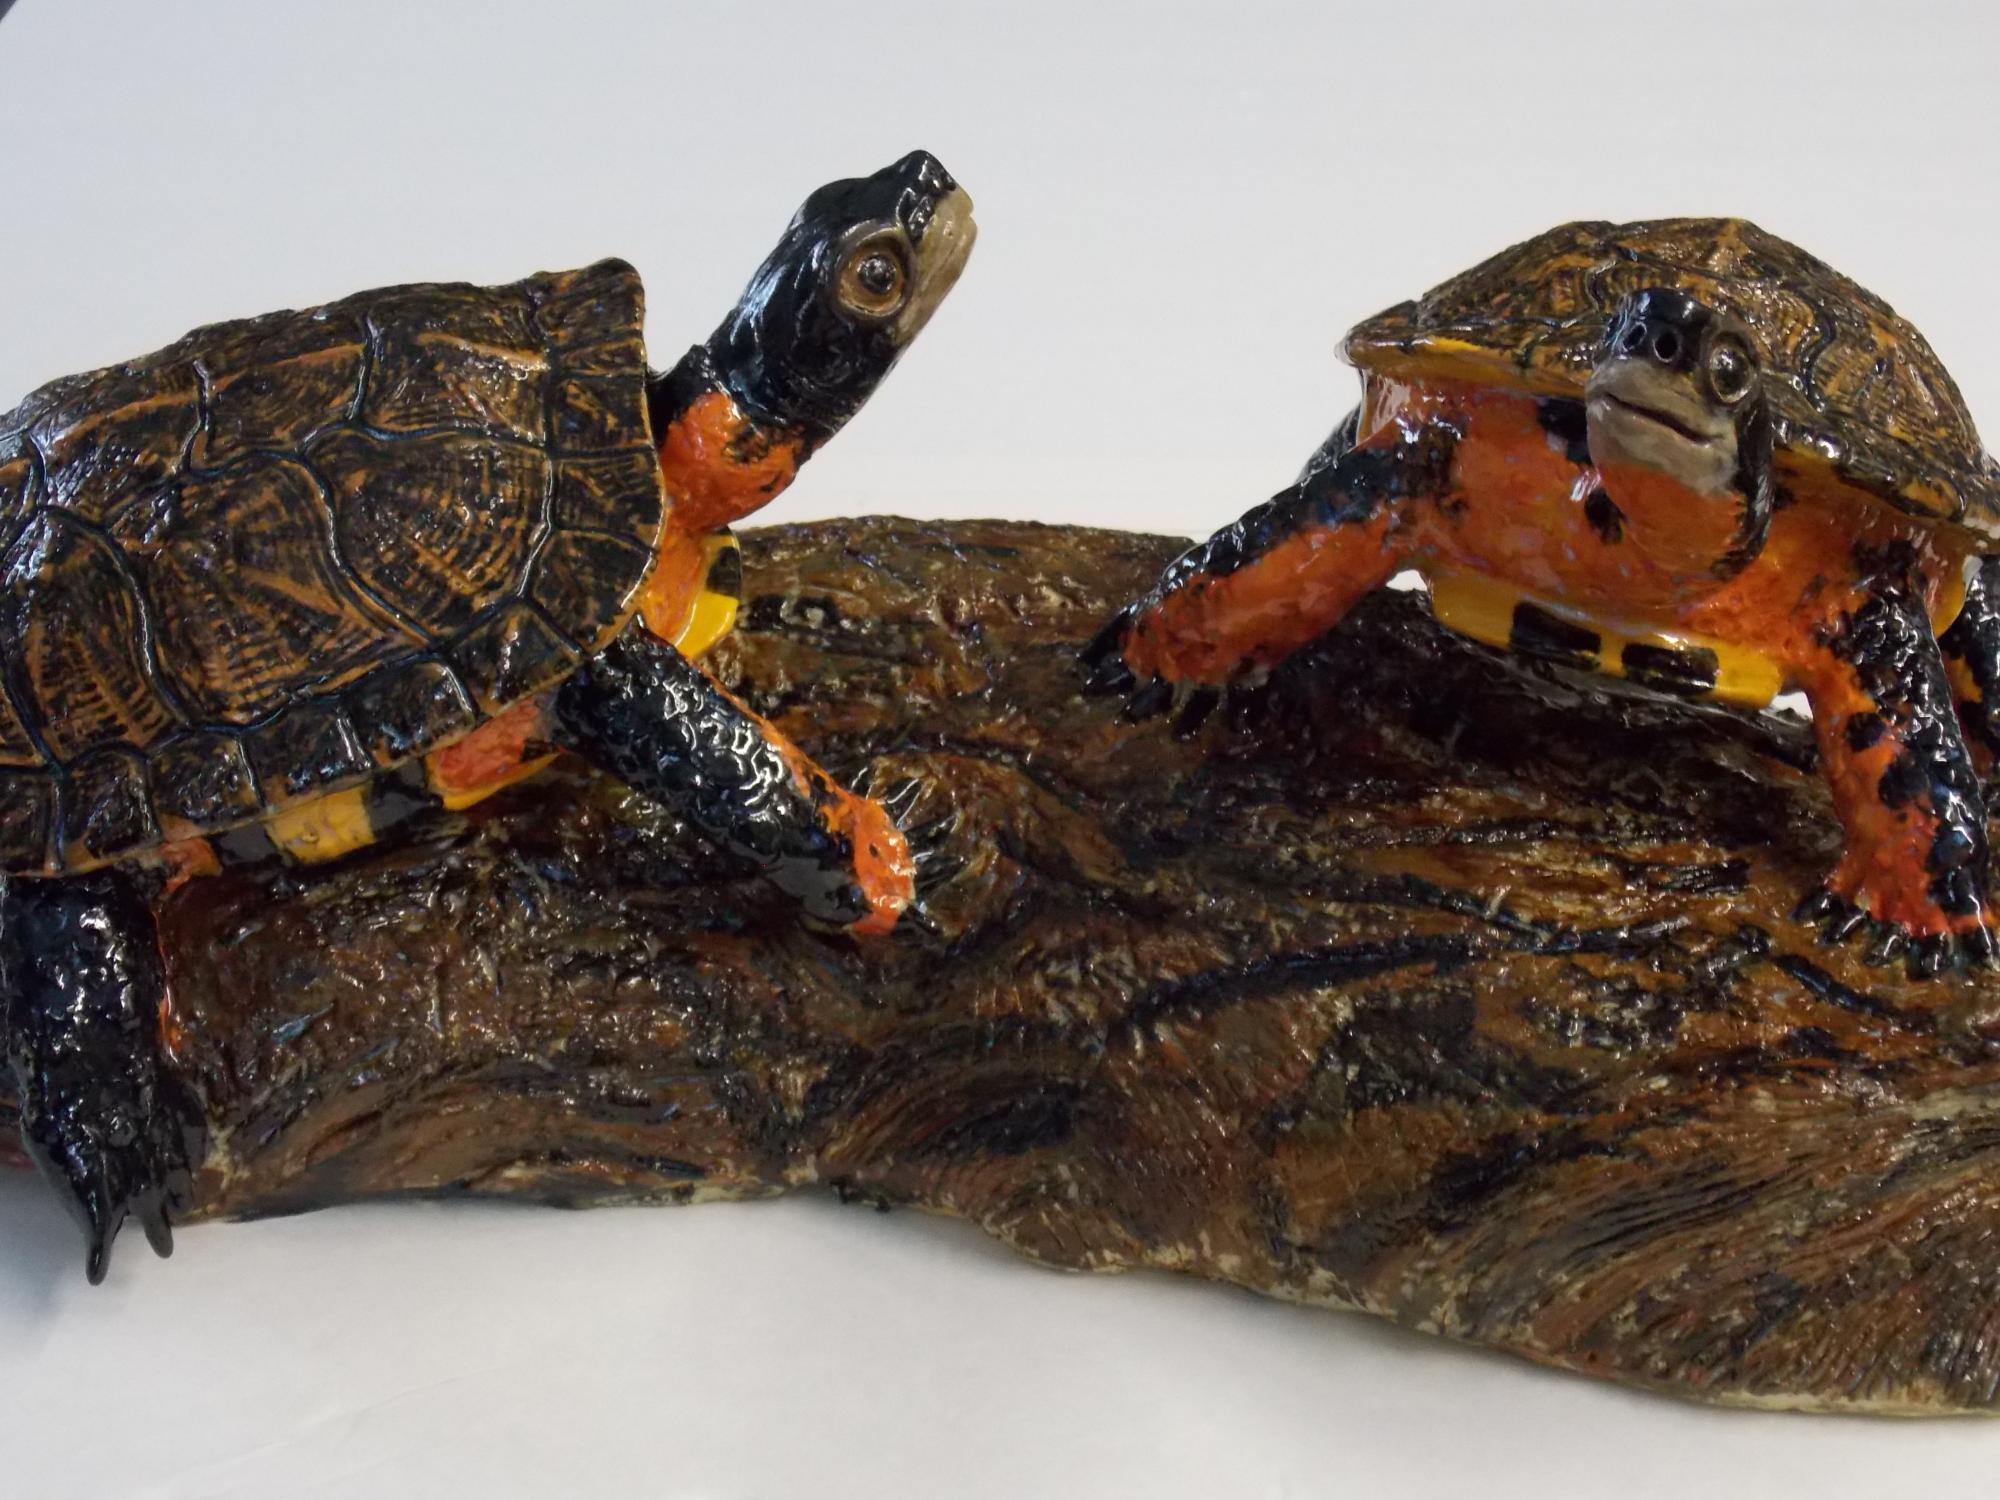 Wood_Turtles_on_log__Muhich_2015__cone_6_ceramic__21_x_9_x_8_inches.JPG